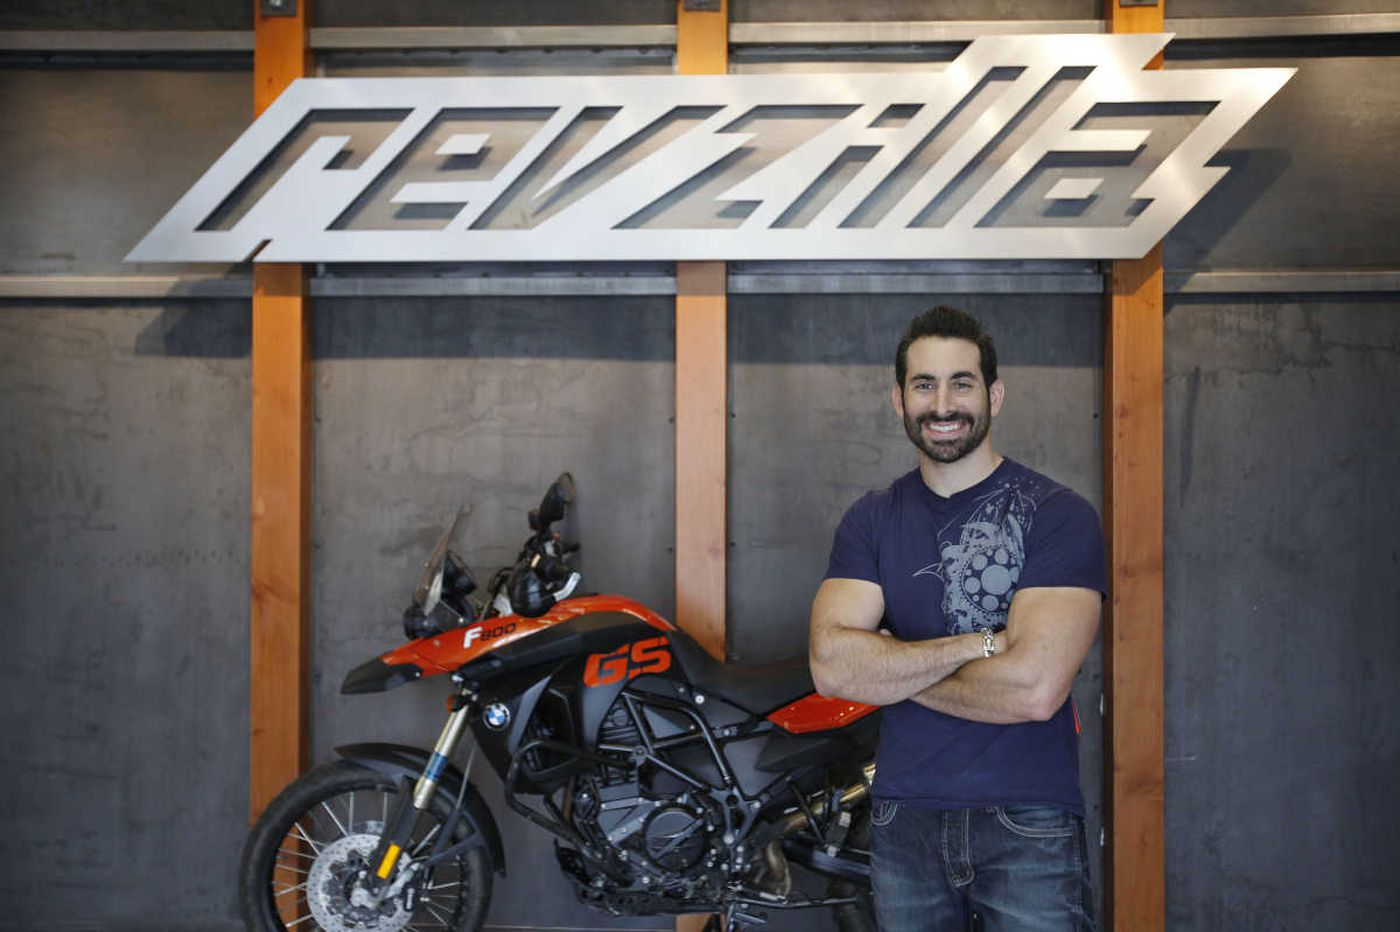 For RevZilla co-founder, time to find another ride